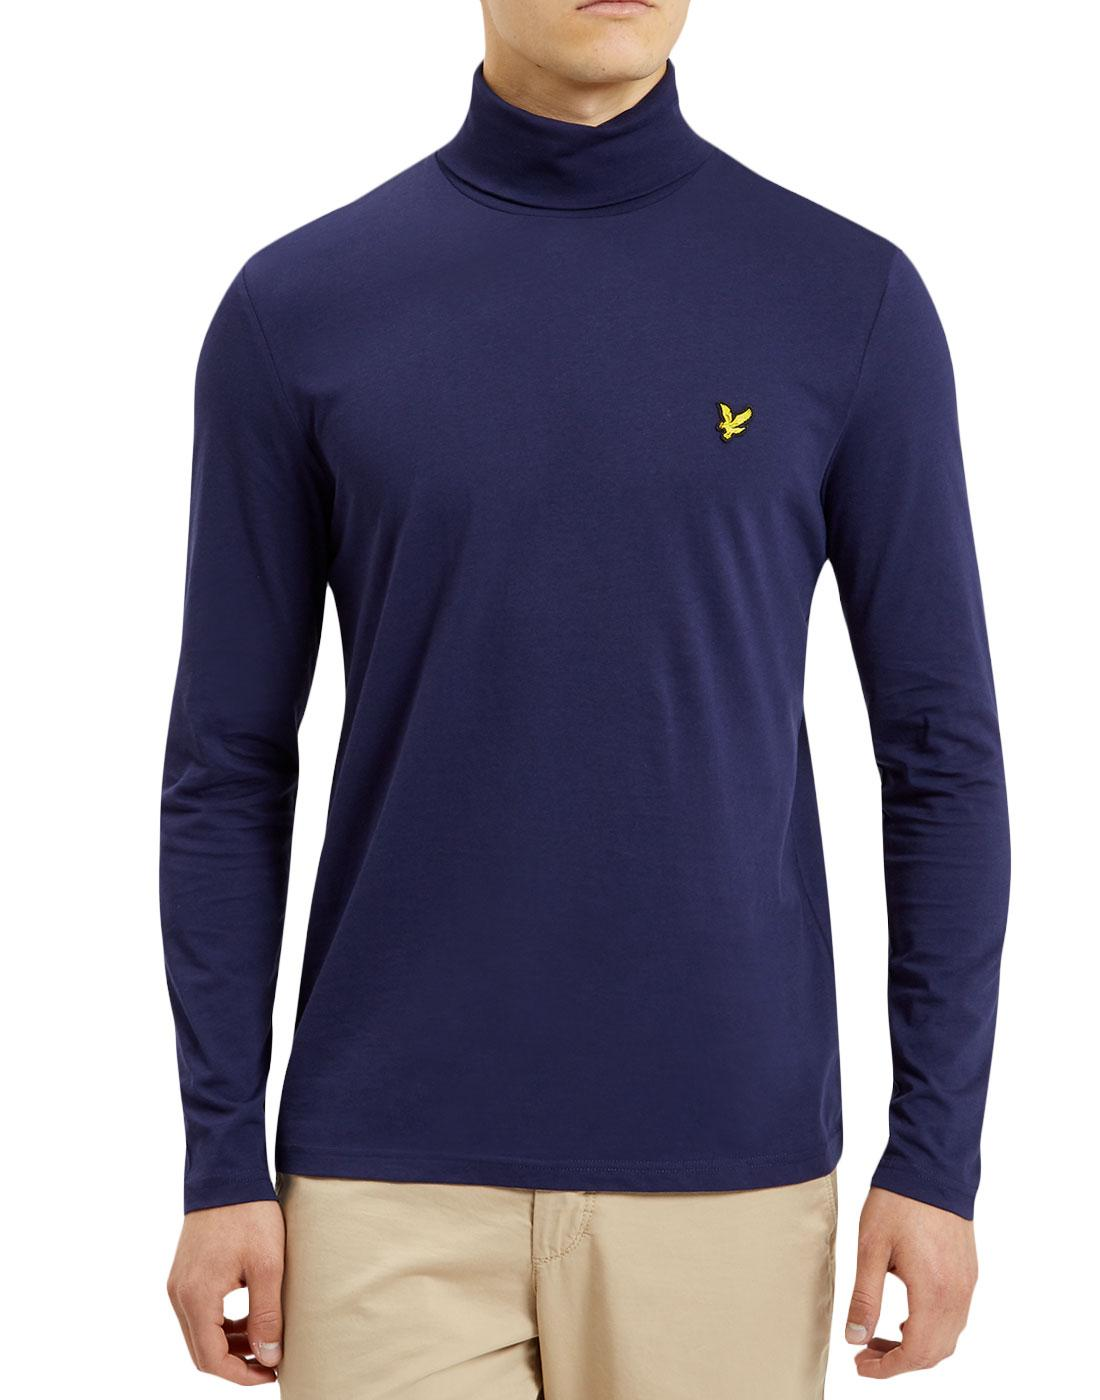 LYLE & SCOTT Retro Mod Roll Neck T-Shirt (Navy)